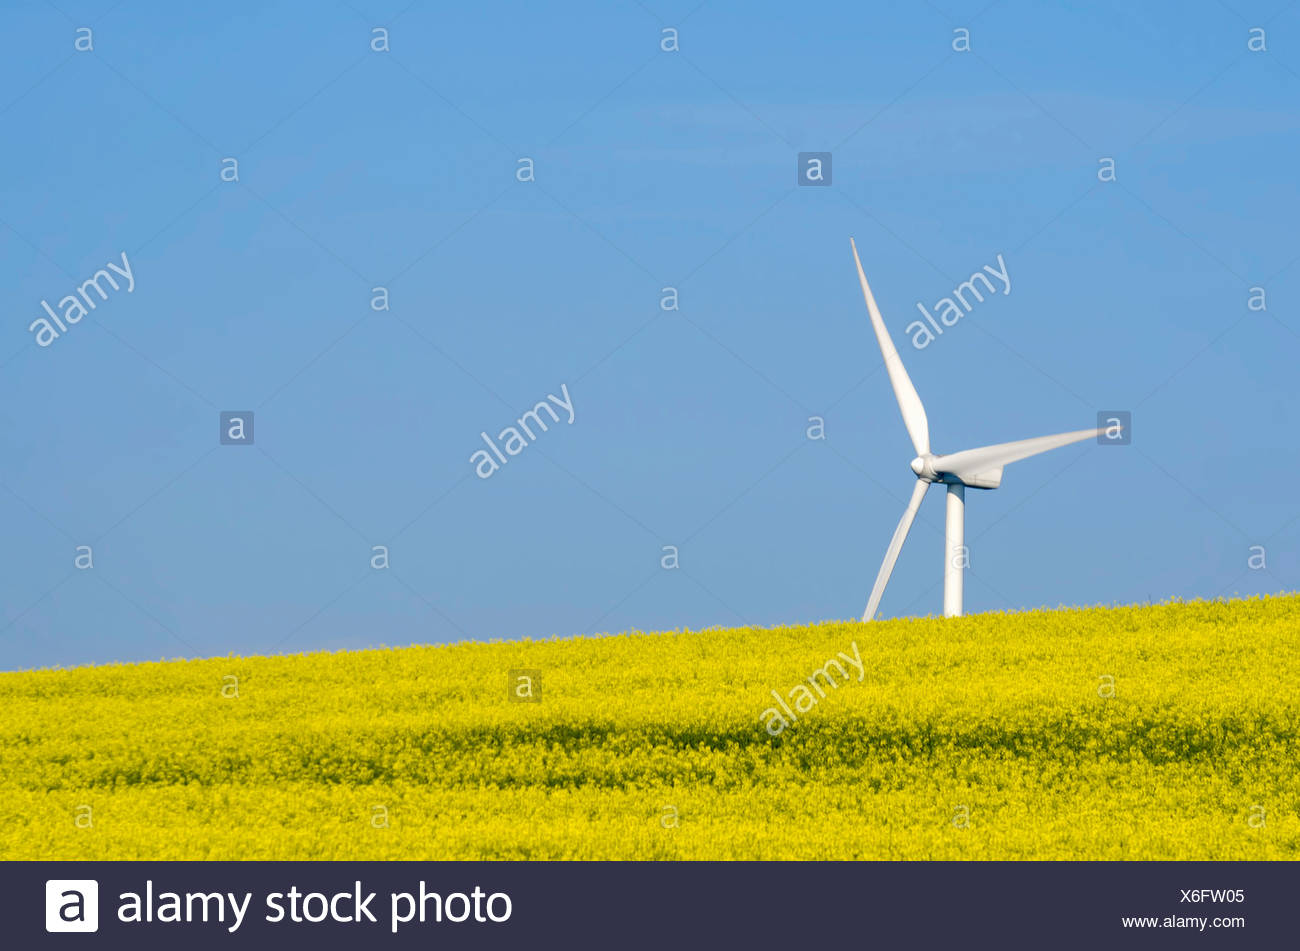 a rapeseed field with a wind turbine sin the background - Stock Image